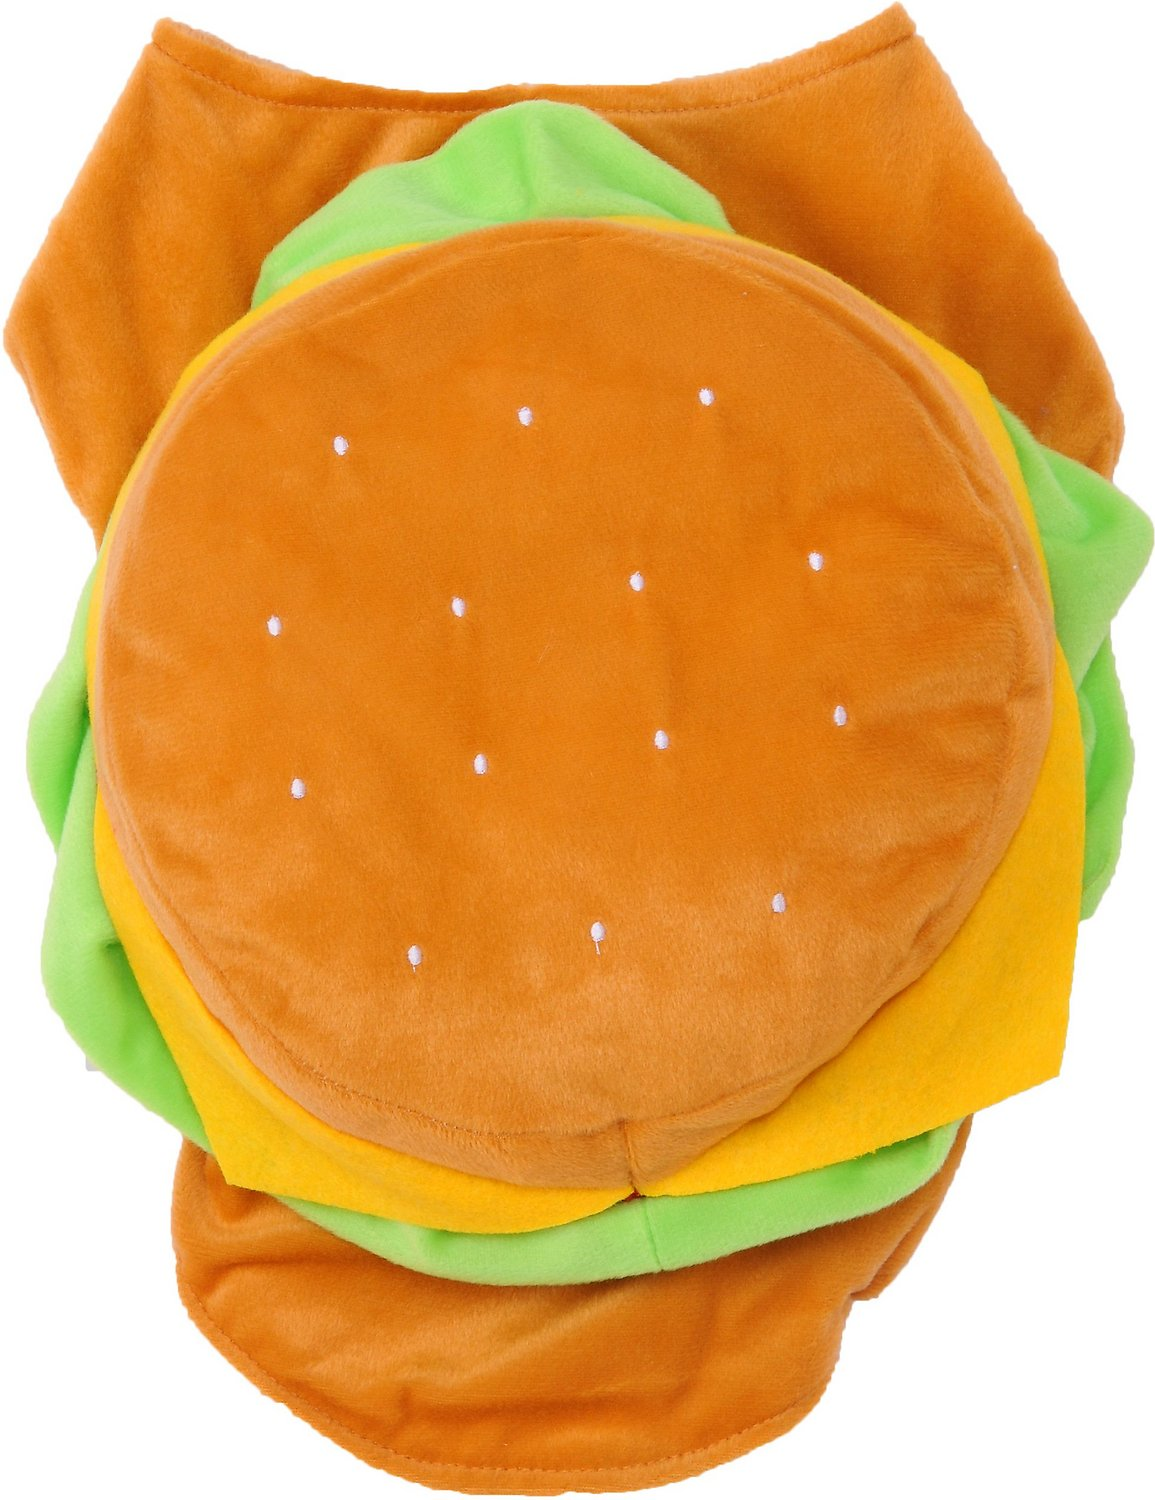 dog halloween costumes cheeseburger dog halloween costumes cheeseburger